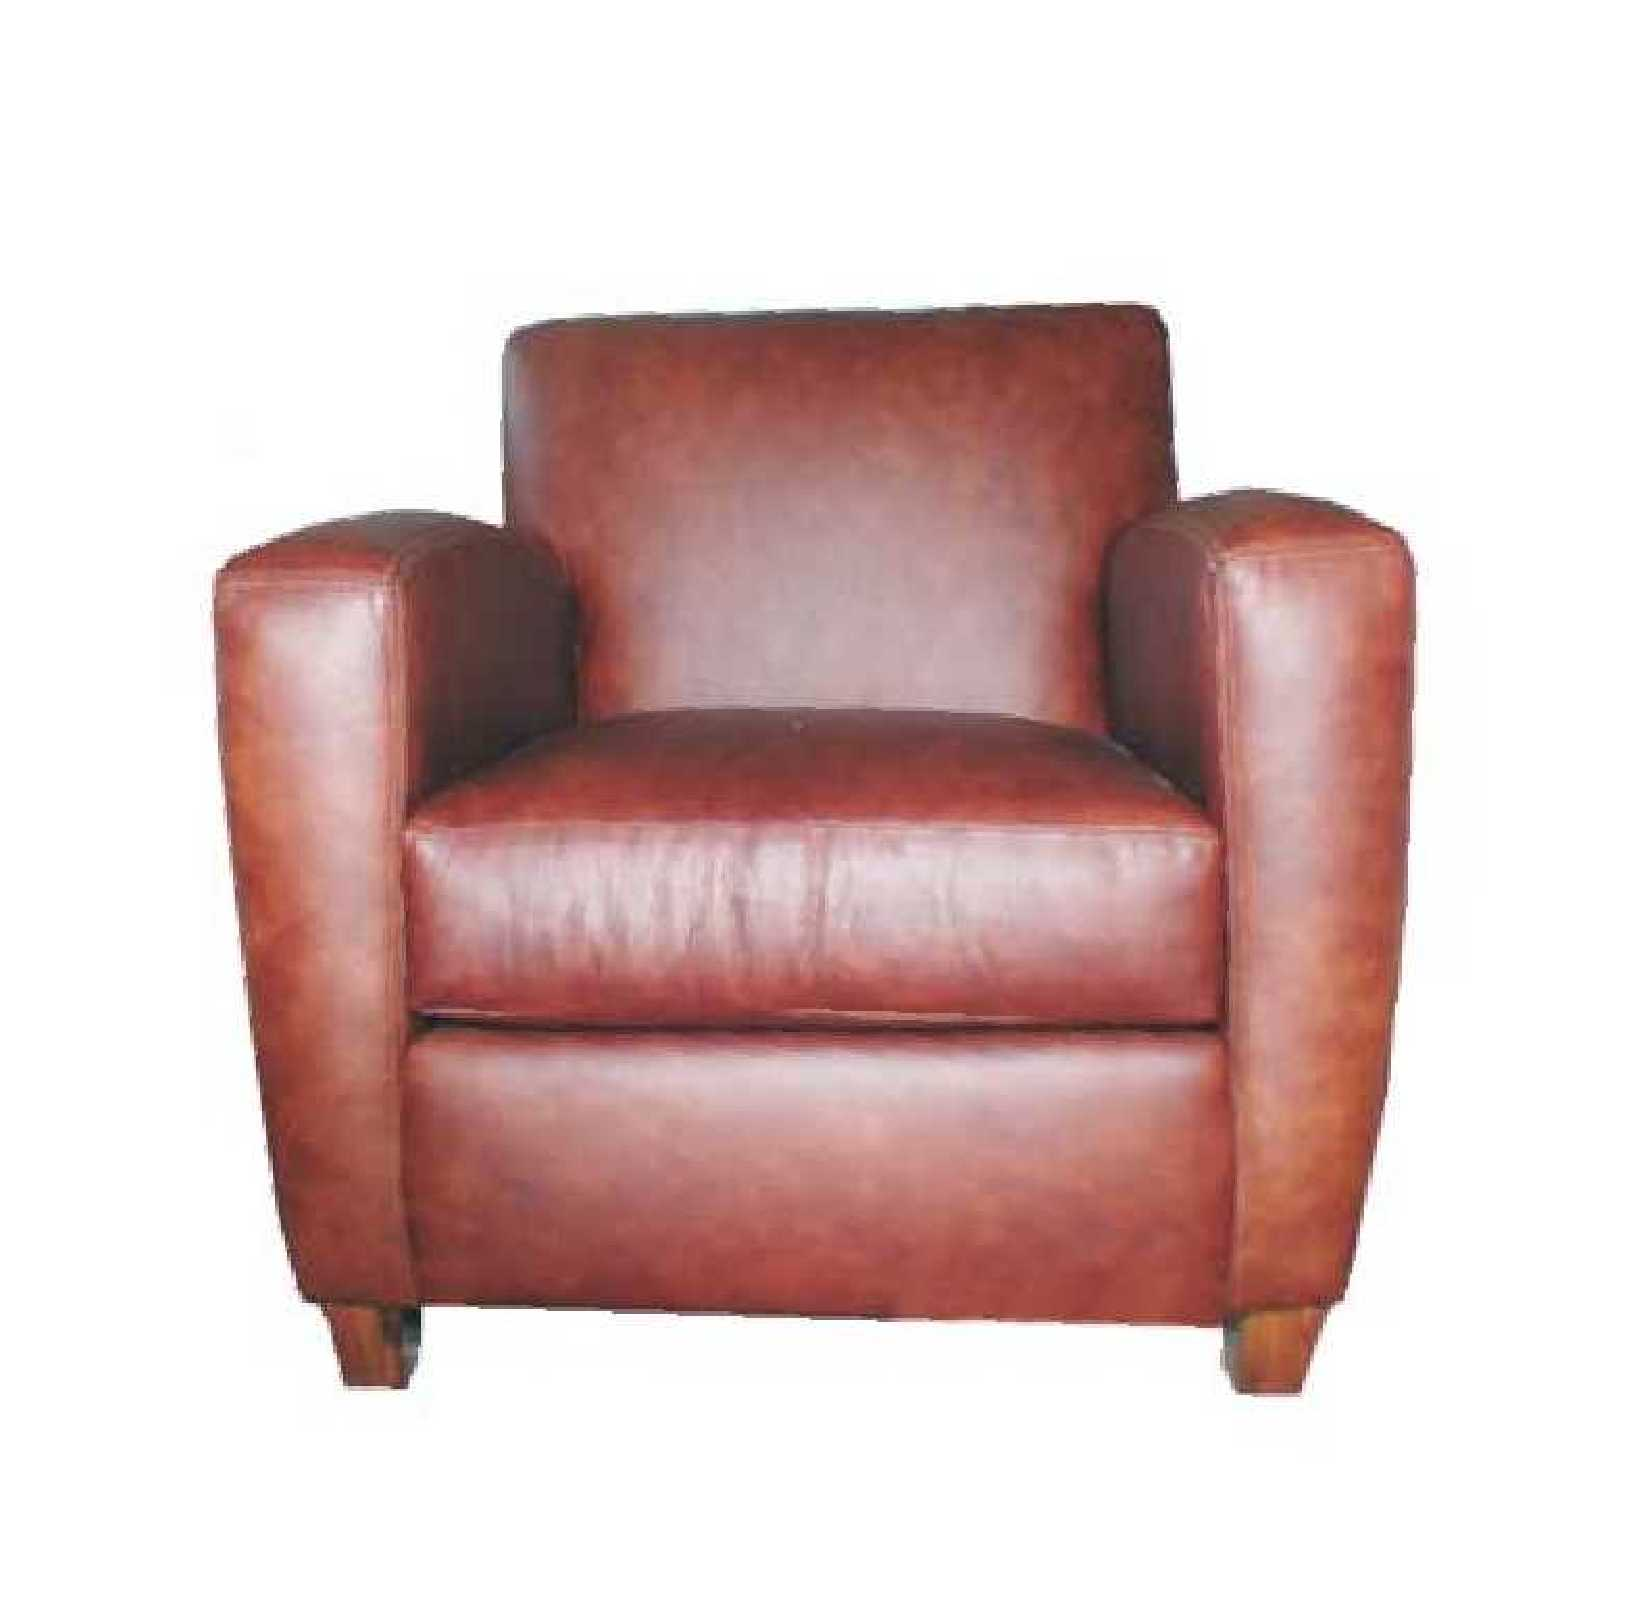 Lovely Prices Of Sofa #2: 3570_chair.jpg